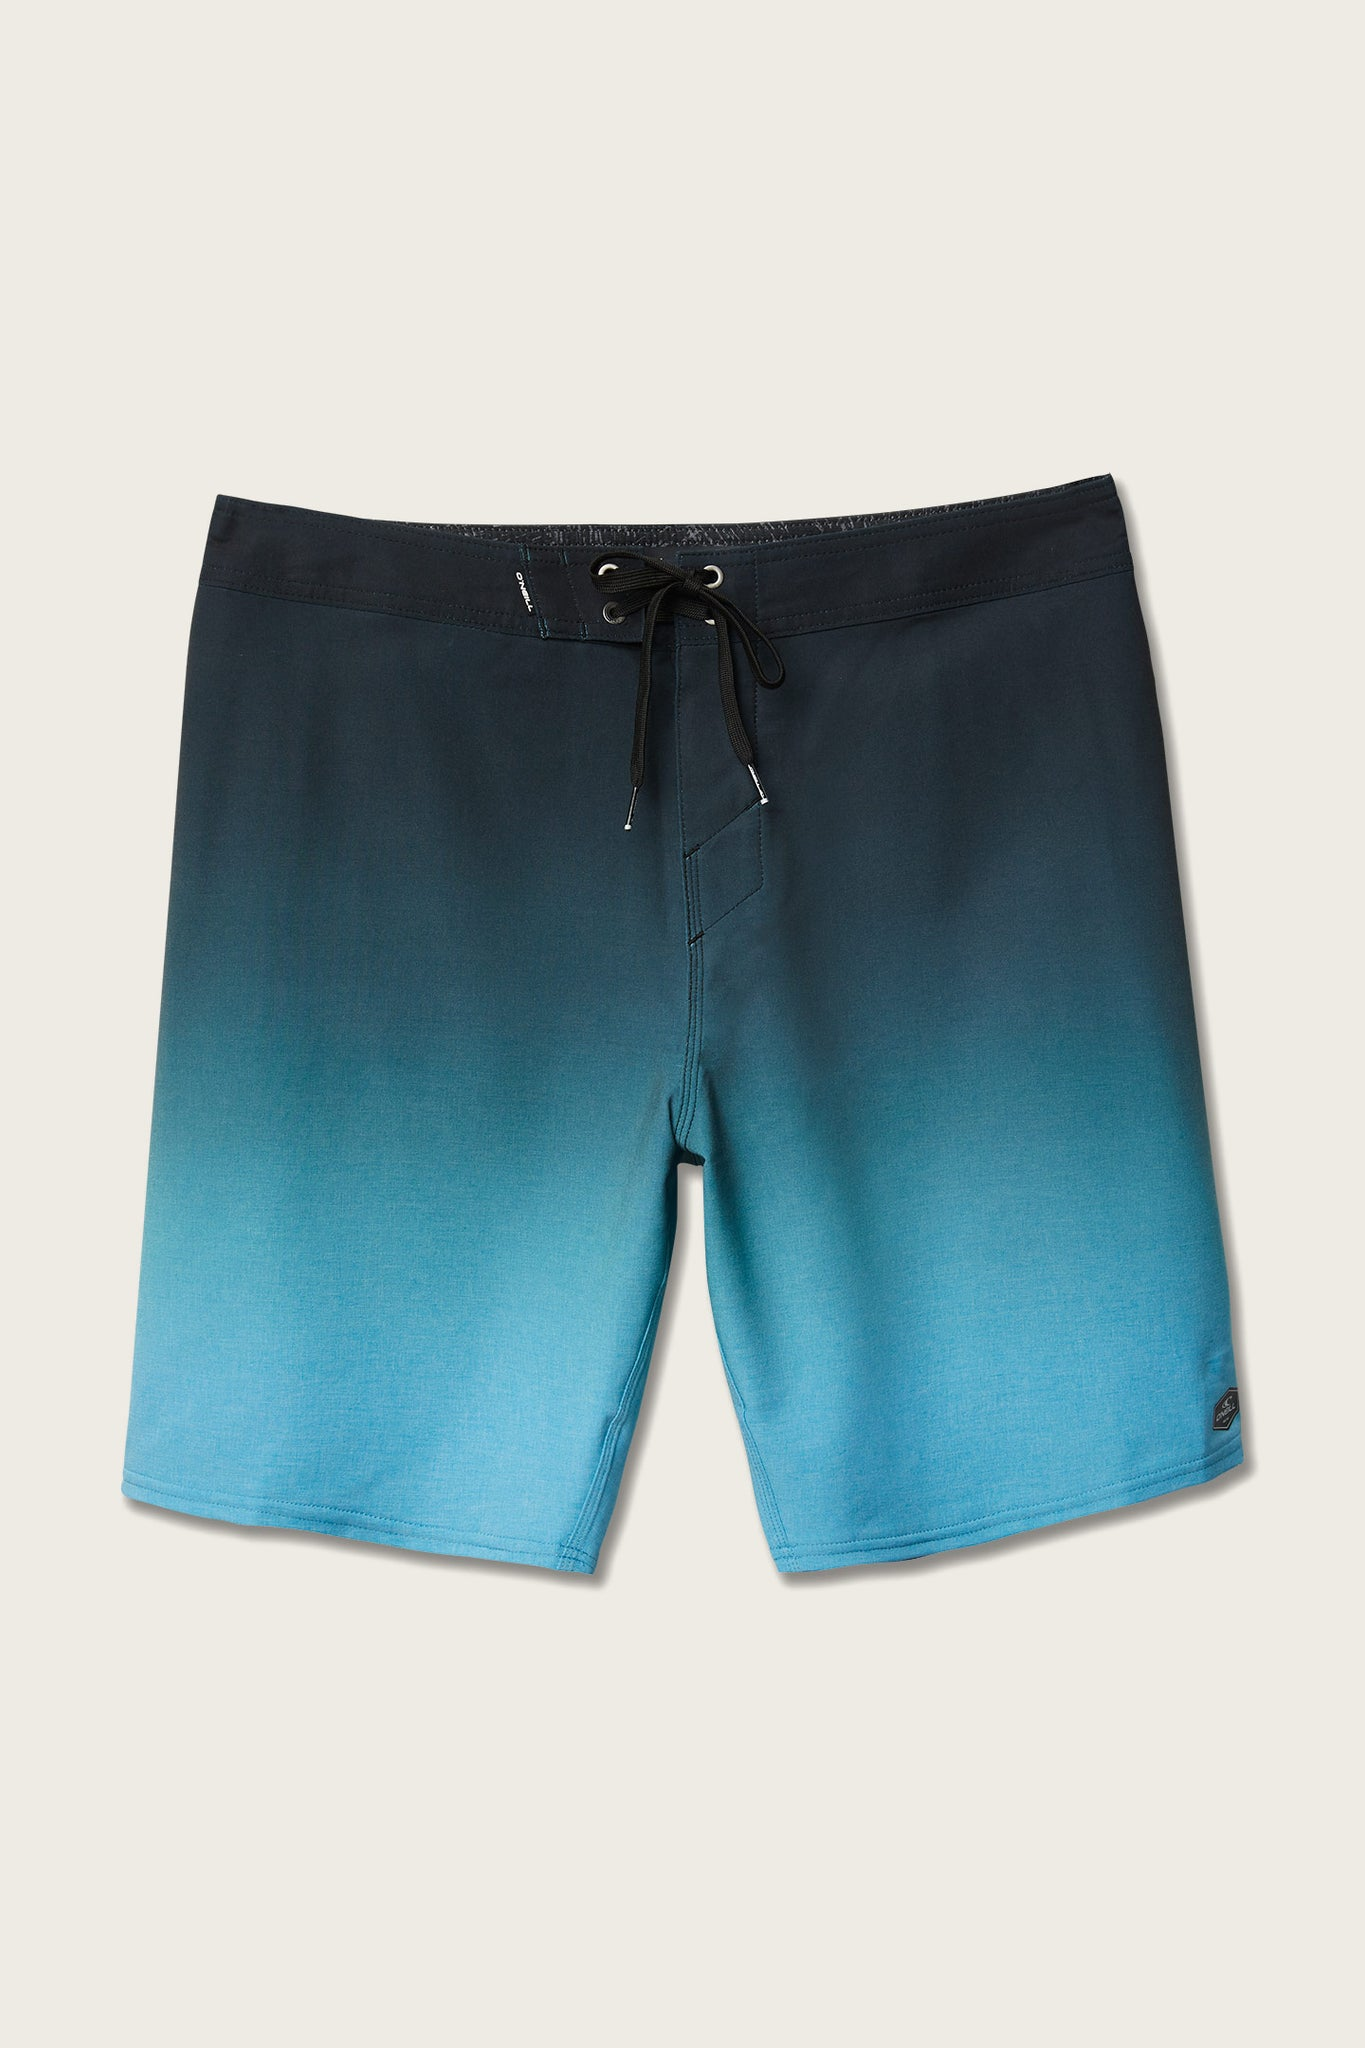 Hyperfreak Solid Boardshorts | O'Neill Clothing USA